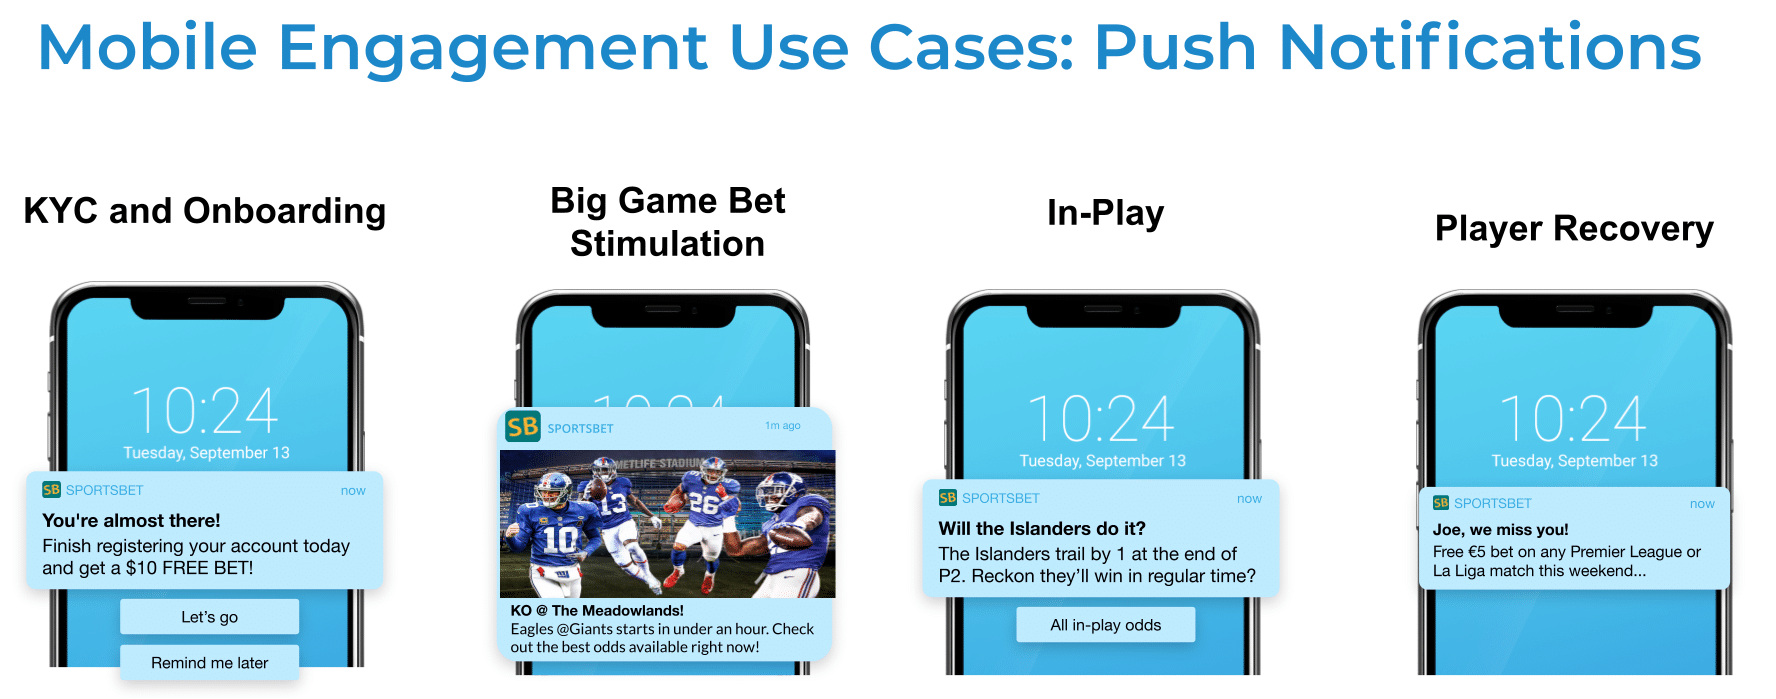 Using push notifications to engage mobile players